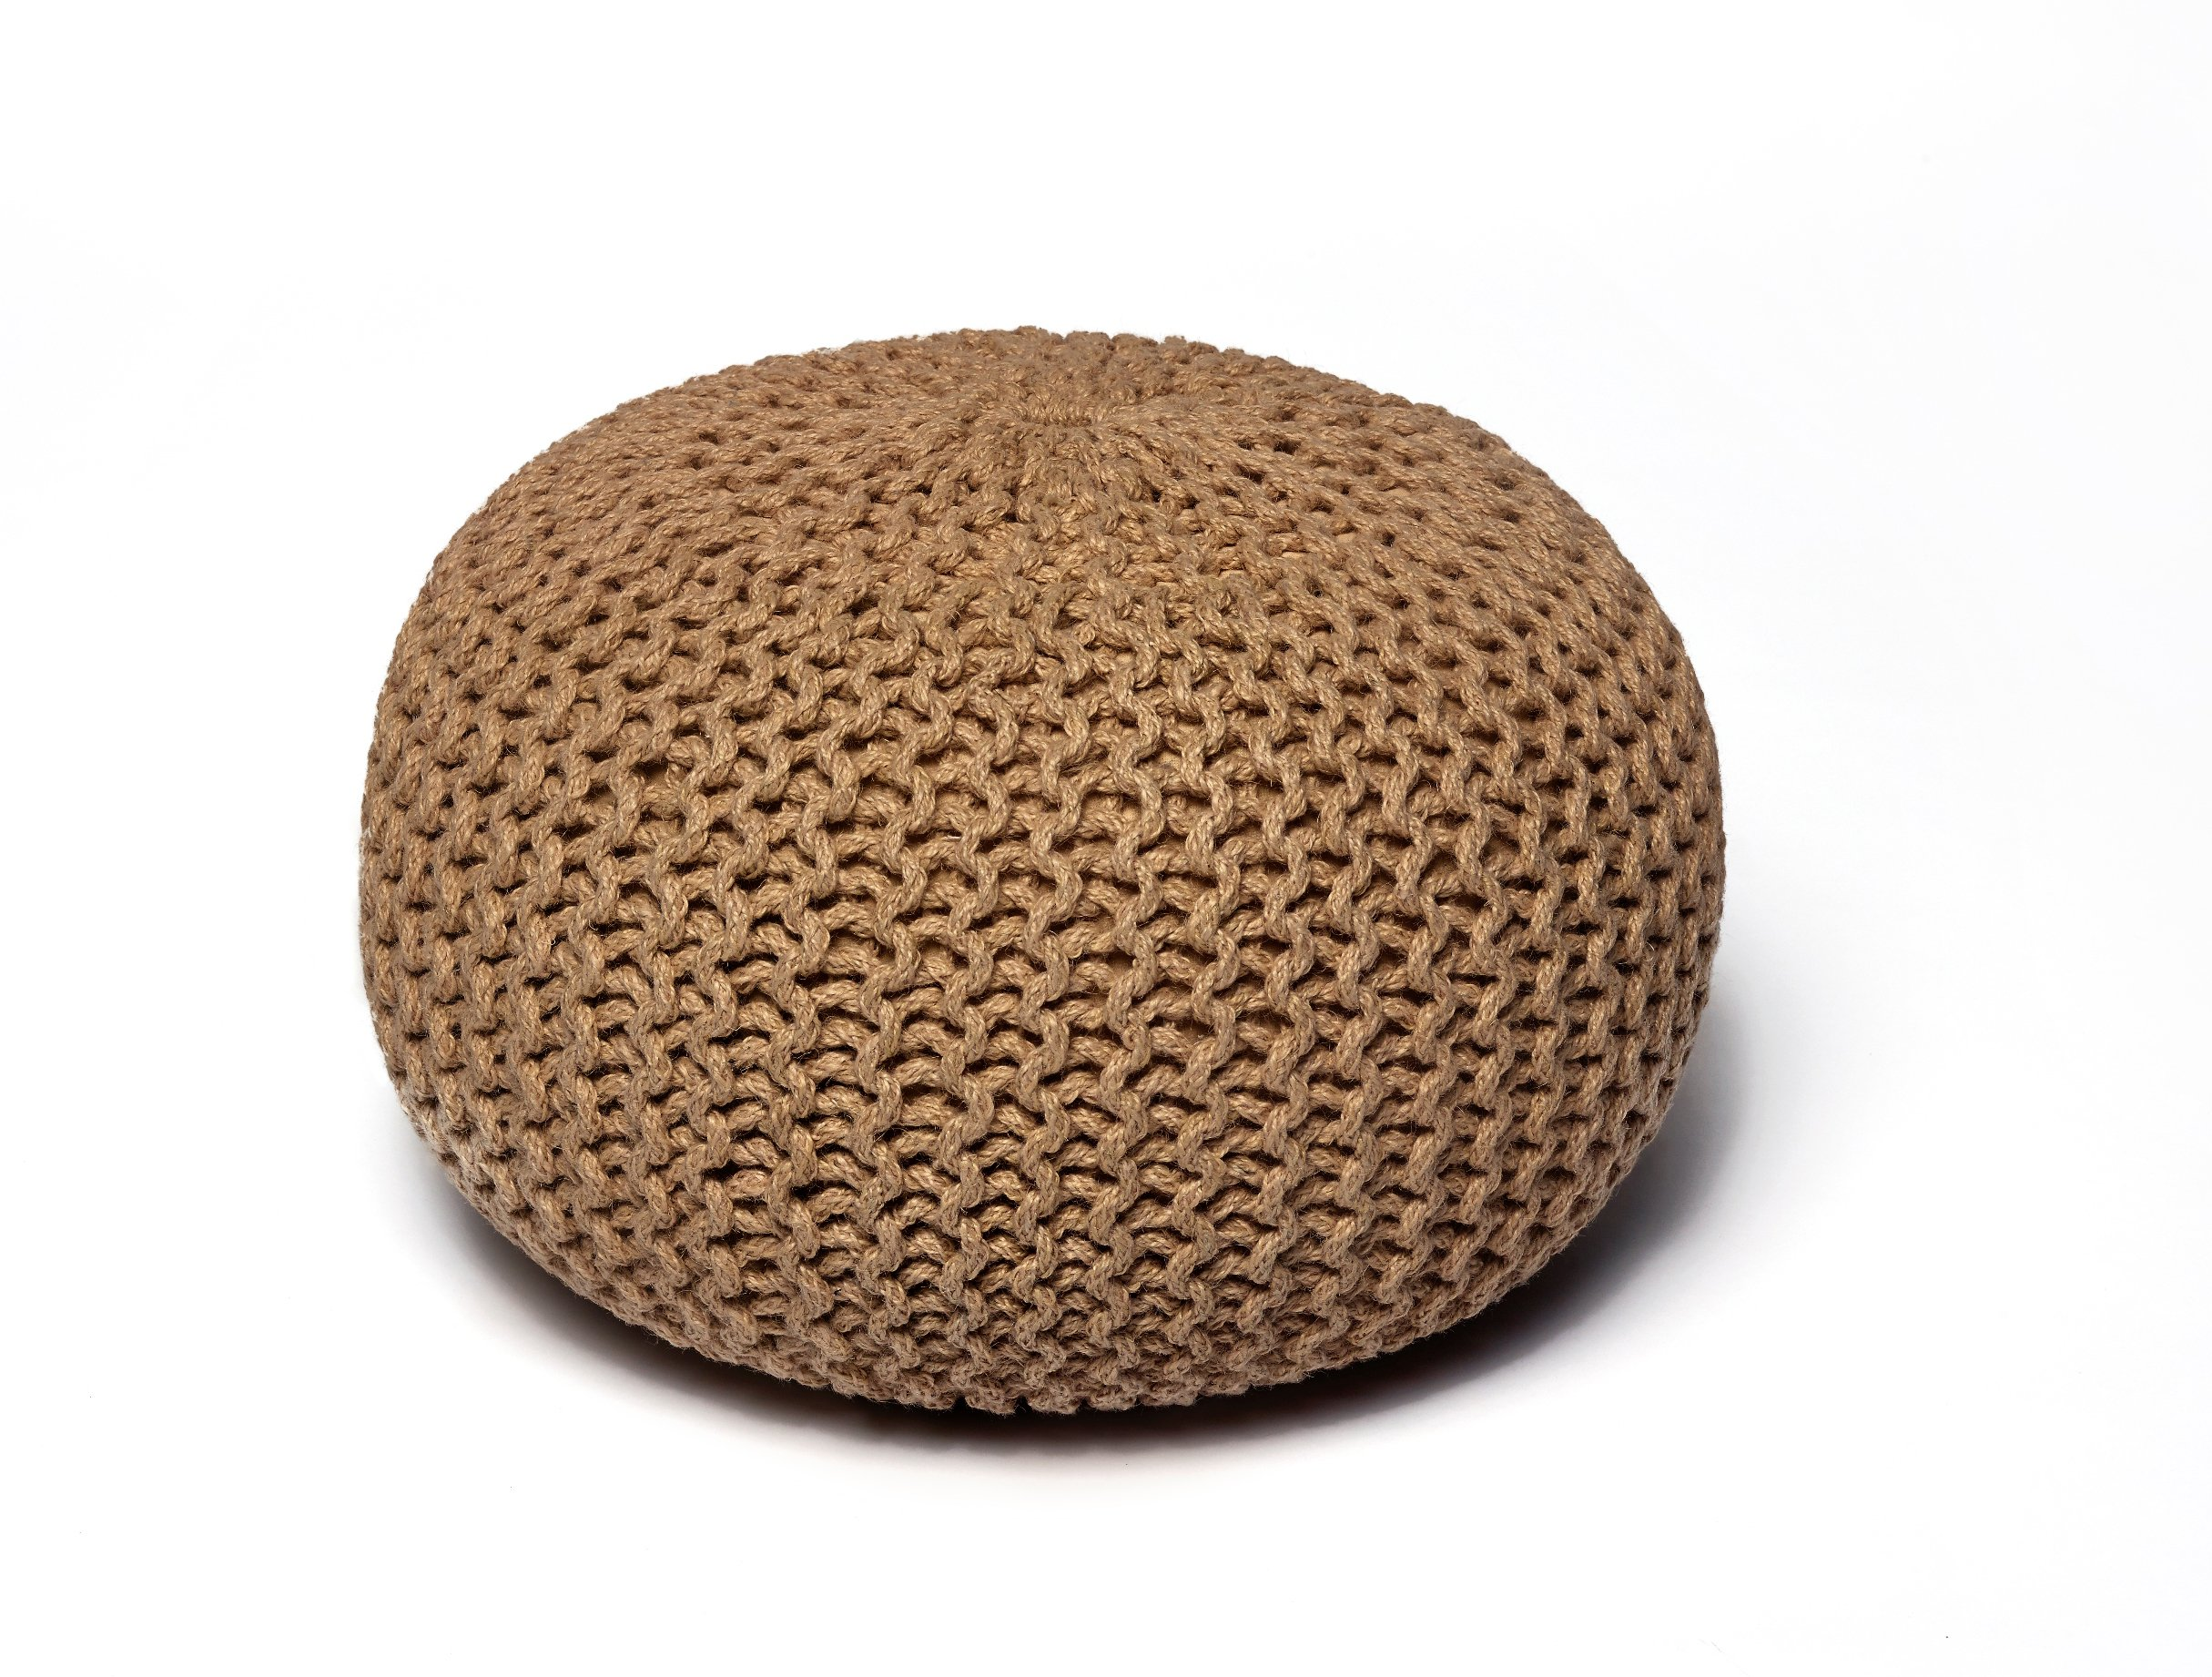 Anji Mountain AMB0009-16RD Round Jute Pouf, 16'', Natural Brown